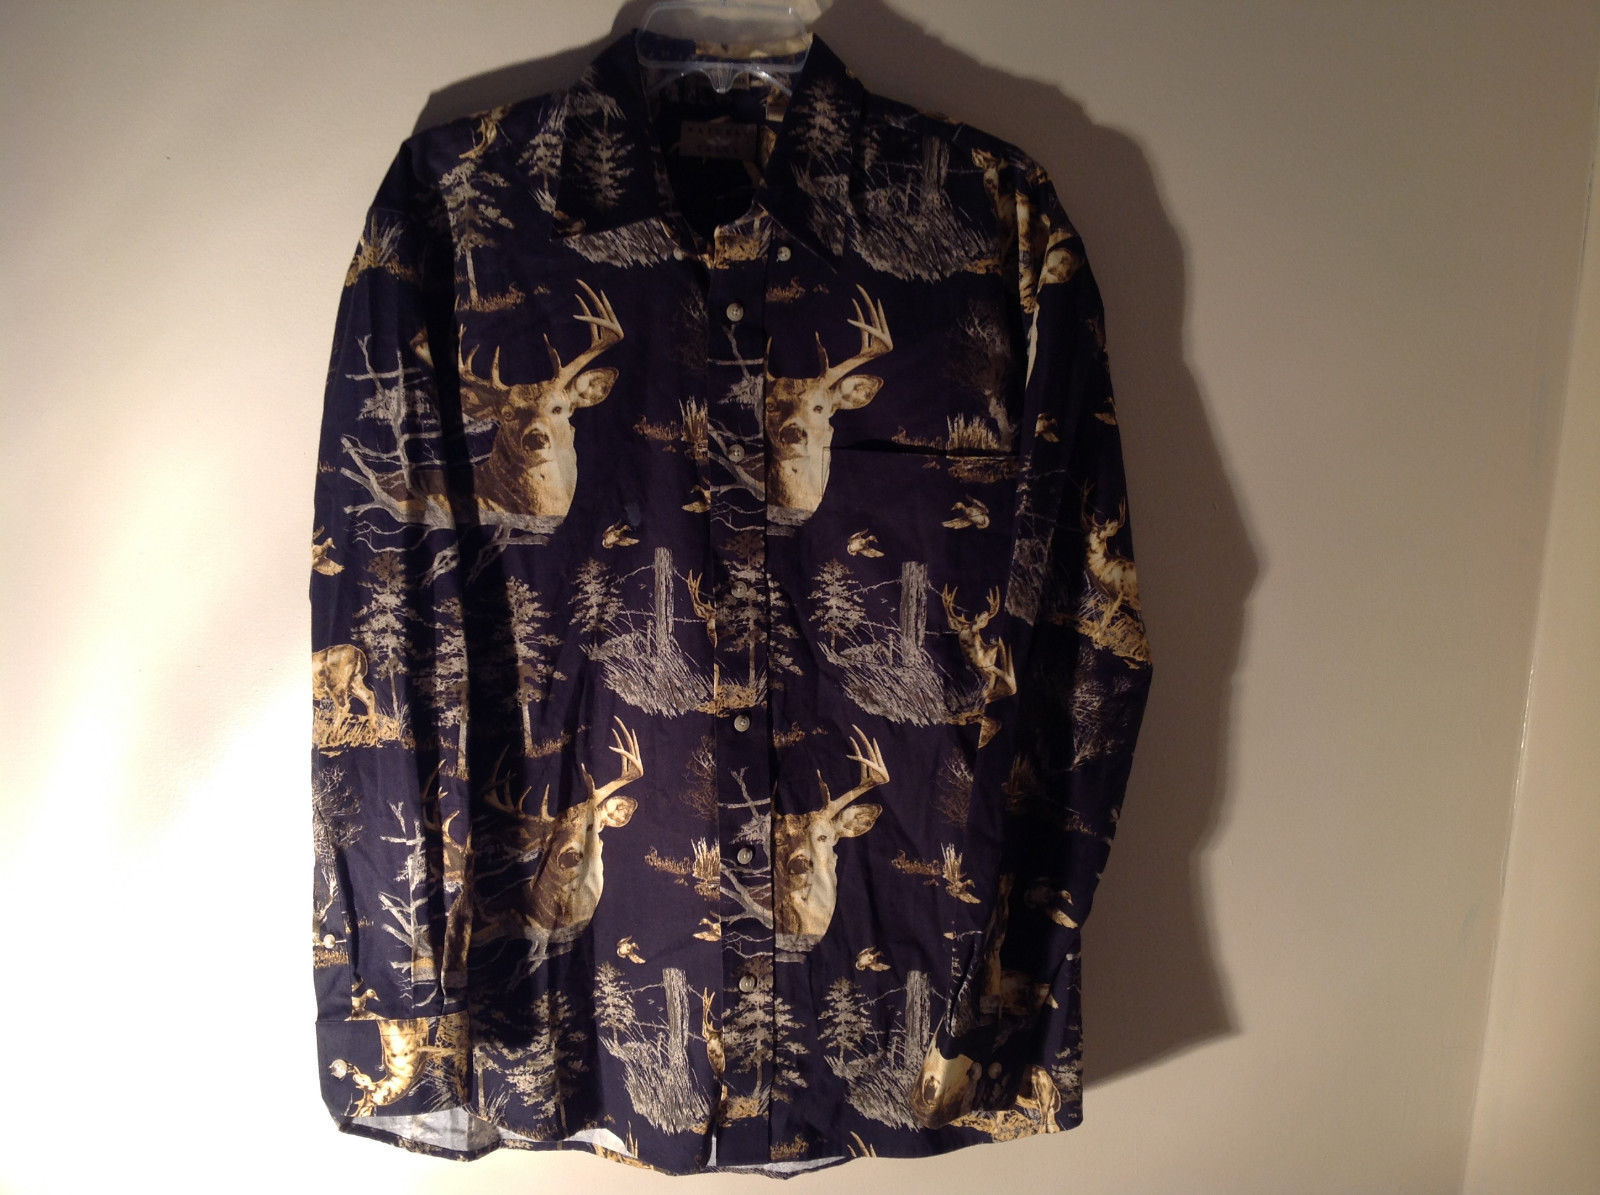 Natural Issue Deer Graphic Casual Button Up Collared Long Sleeve Shirt Size M